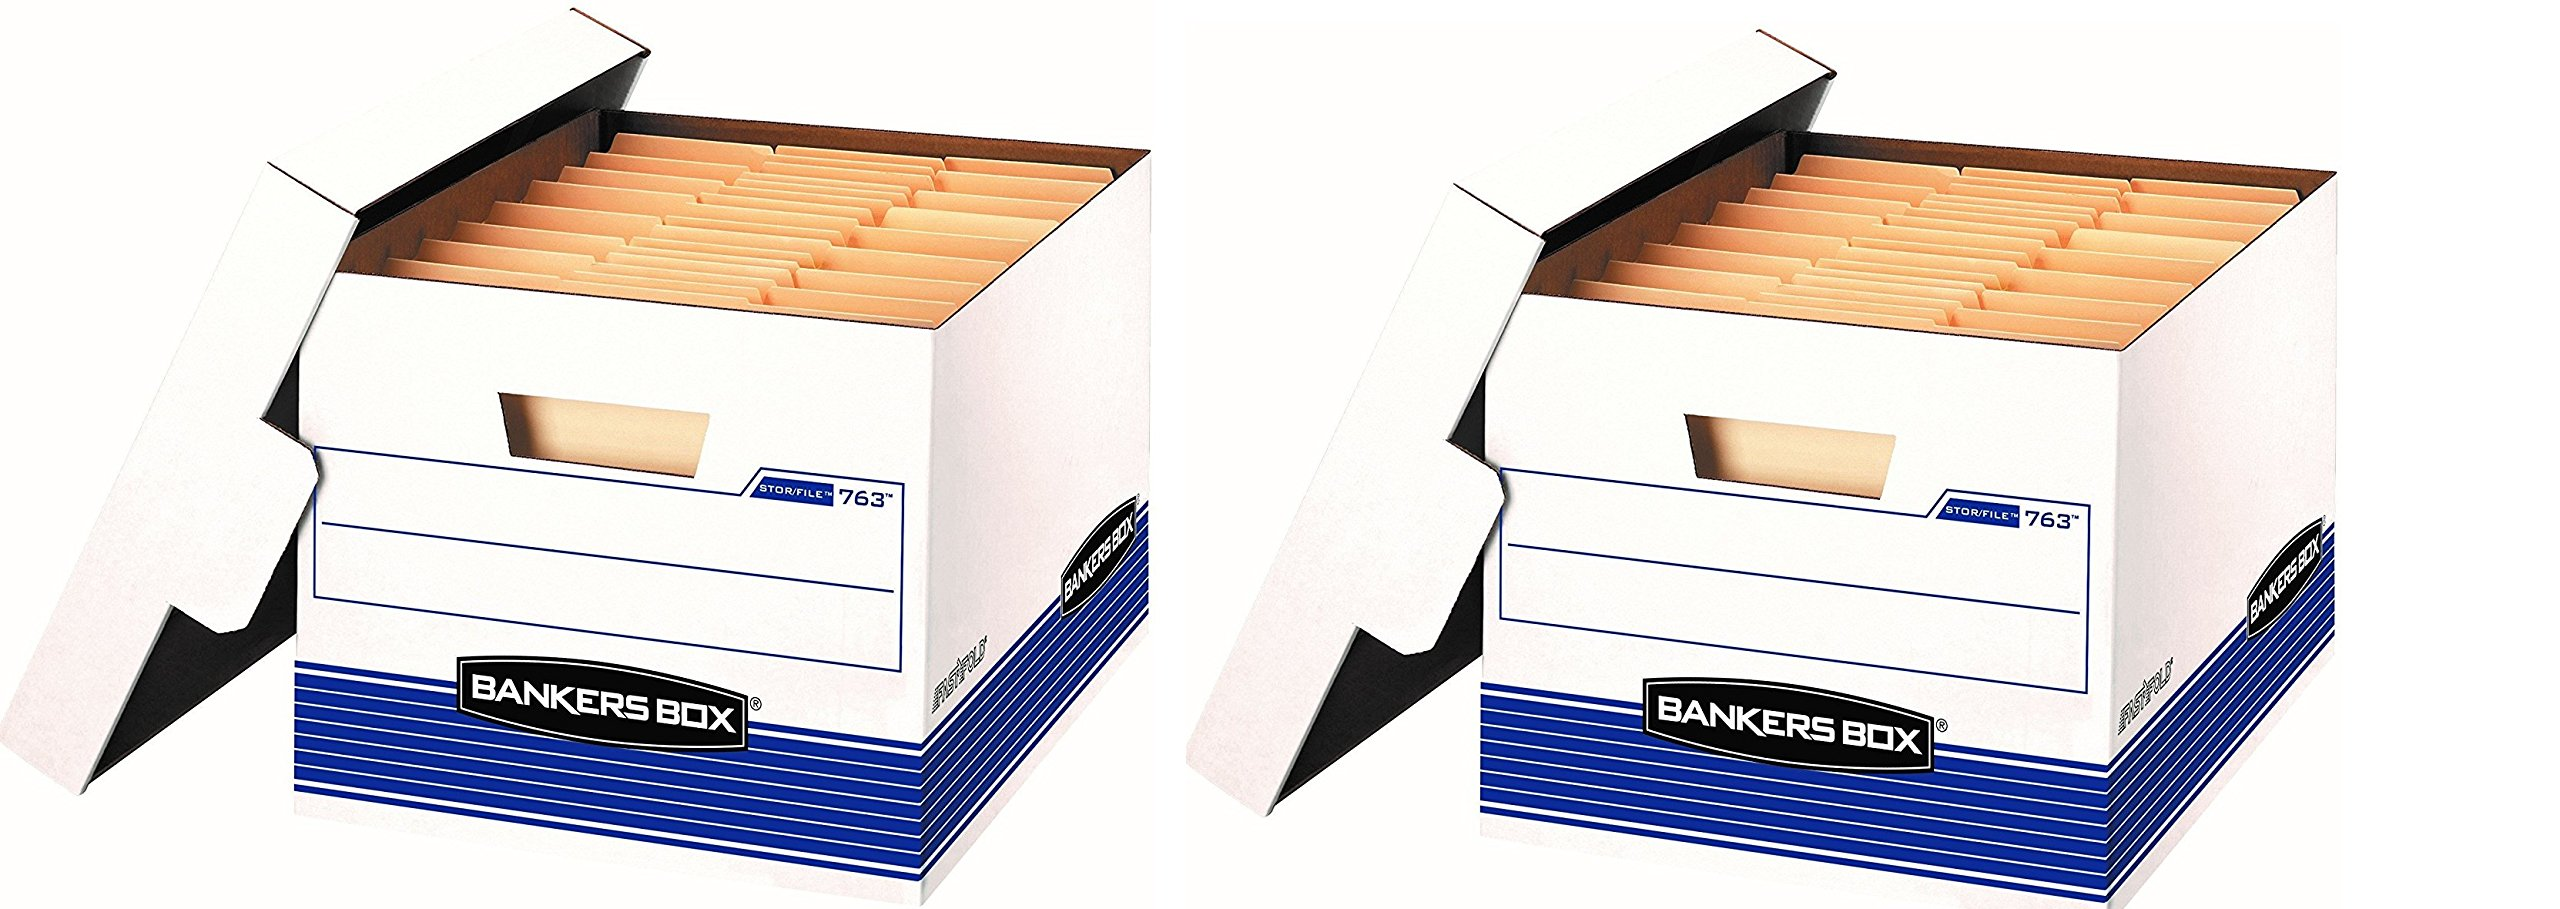 Bankers Box Stor/File Medium-Duty Storage Boxes with Lift-Off Lid, Letter/Legal, 20 Pack (0076315) (Pack of 2)